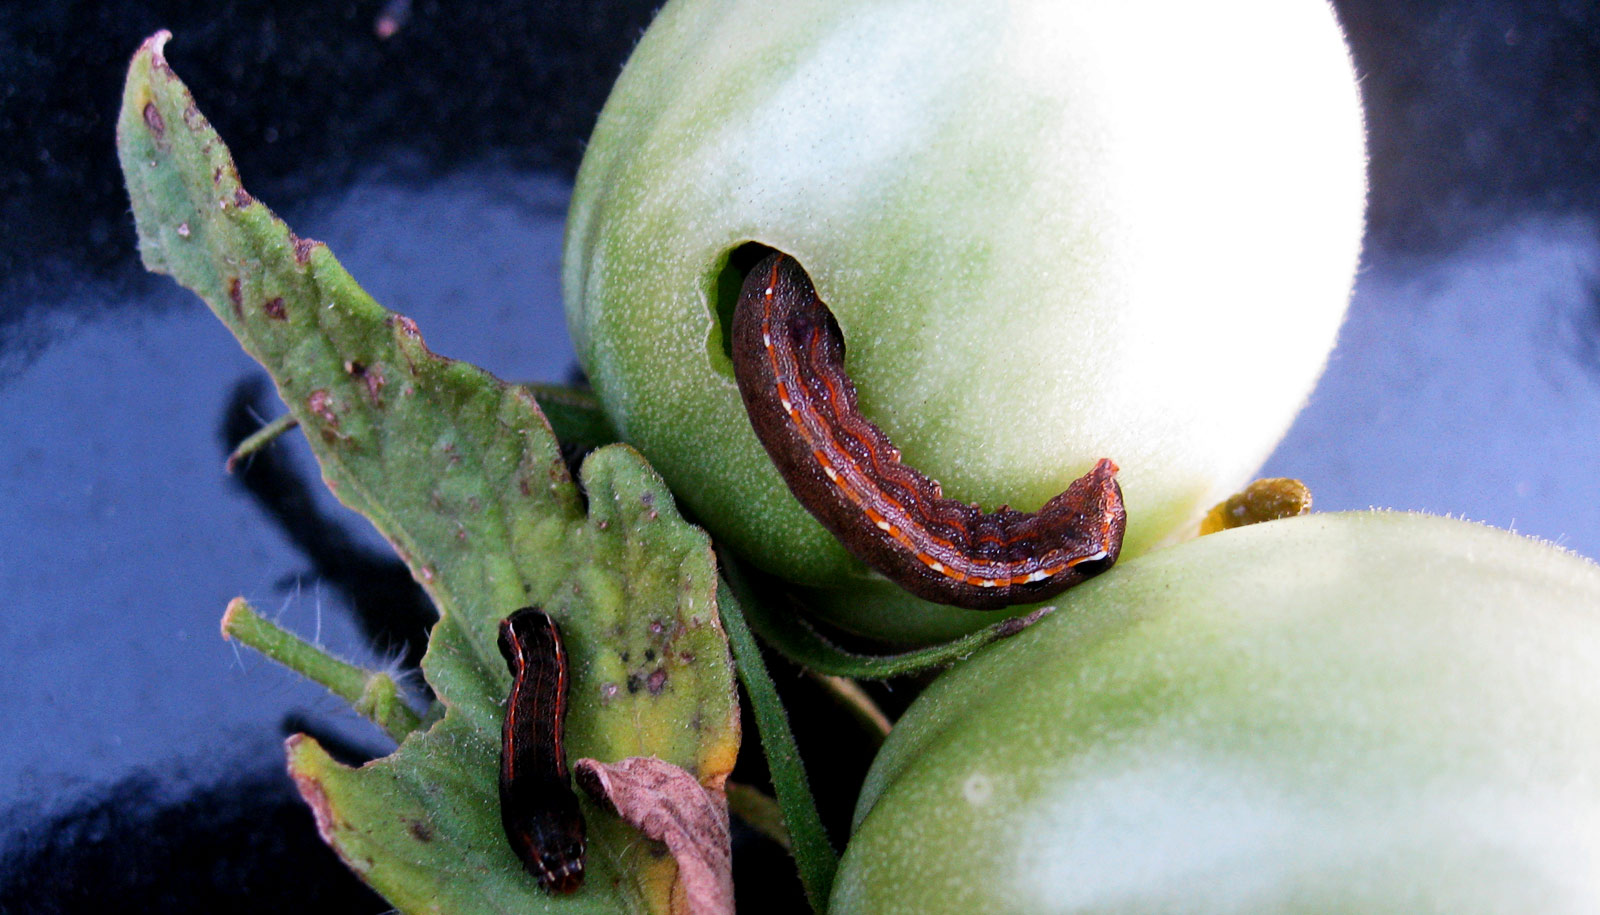 These pests use bacteria to keep plants clueless